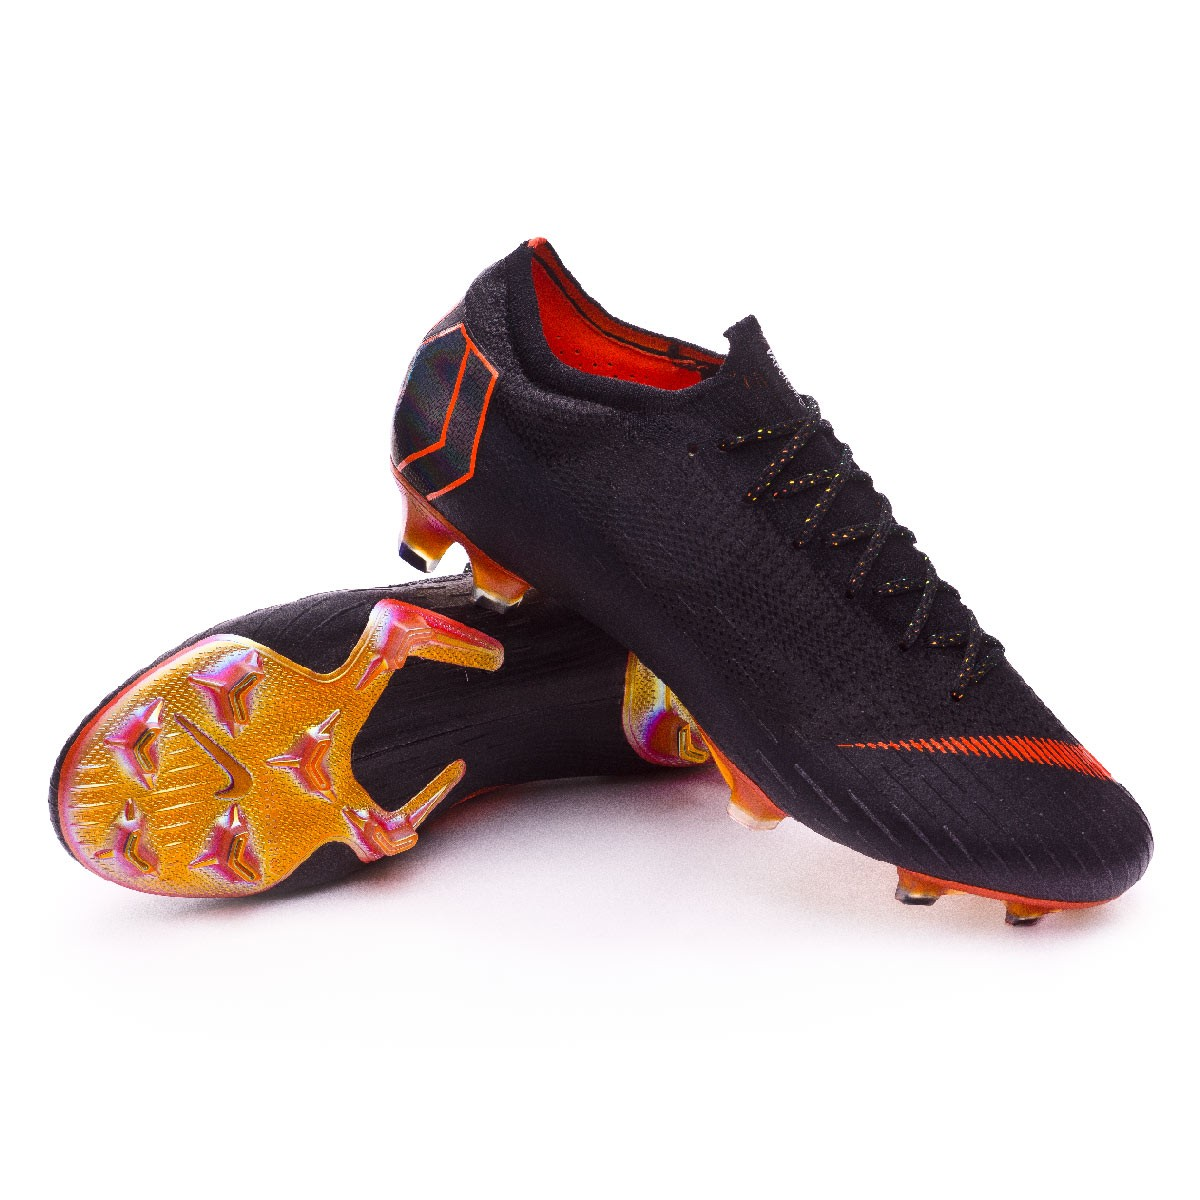 9fbcc49ced2 ... new zealand boot nike mercurial vapor xii elite fg black total orange  white 134ec dd6d7